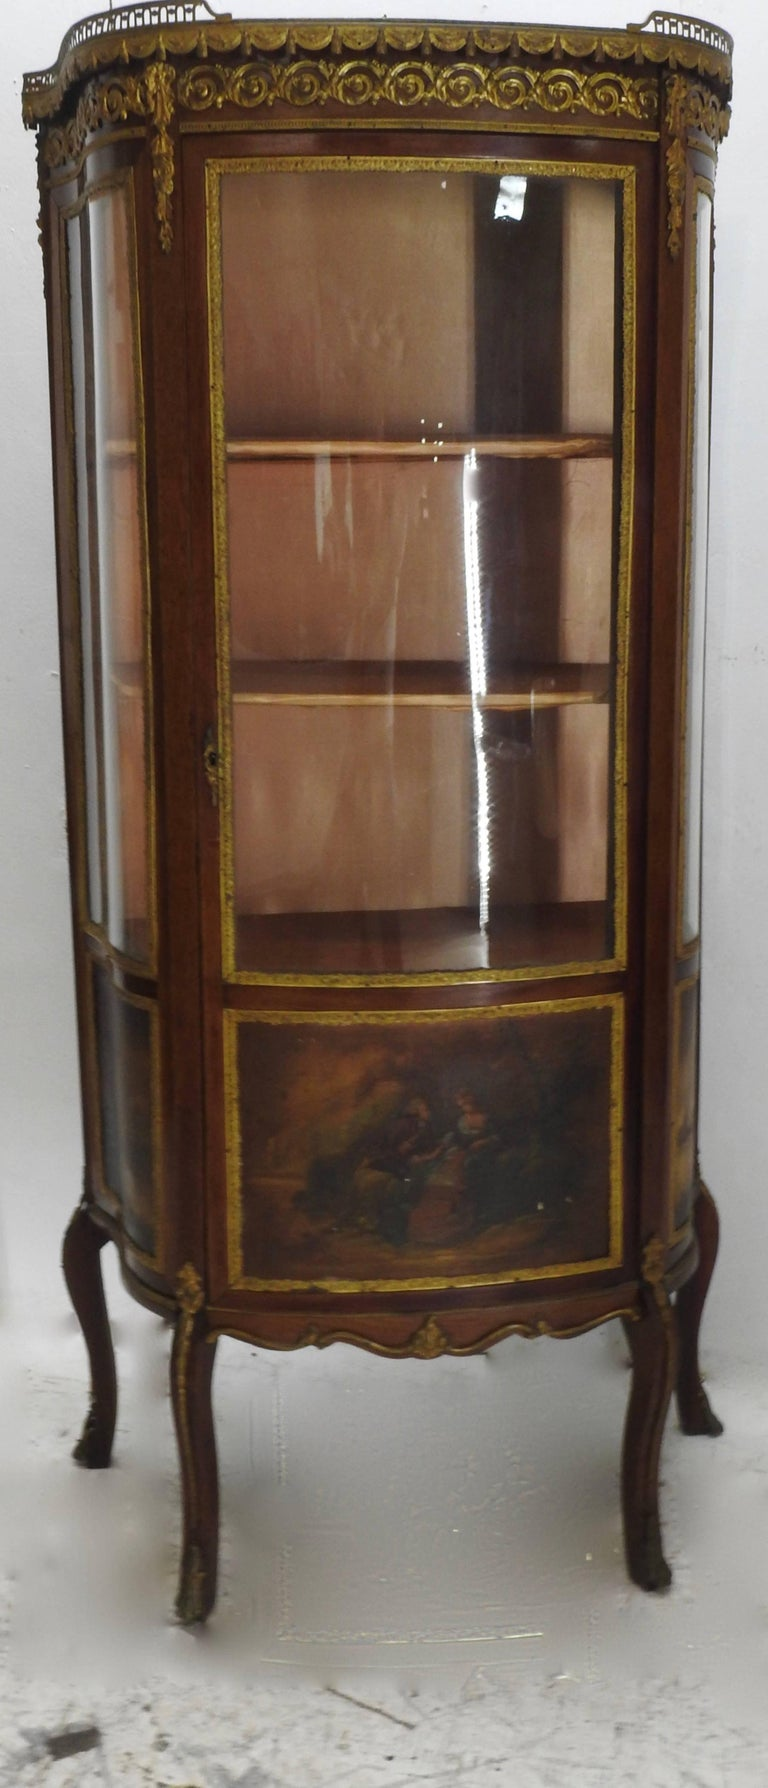 We are offering a beautifully detailed French Vitrine with outstanding Ormolu features. The top is finished with grey and rust colored marble and is framed with fencing. Gold satin lines the interior. Three pieces of curved glass add to the beauty.